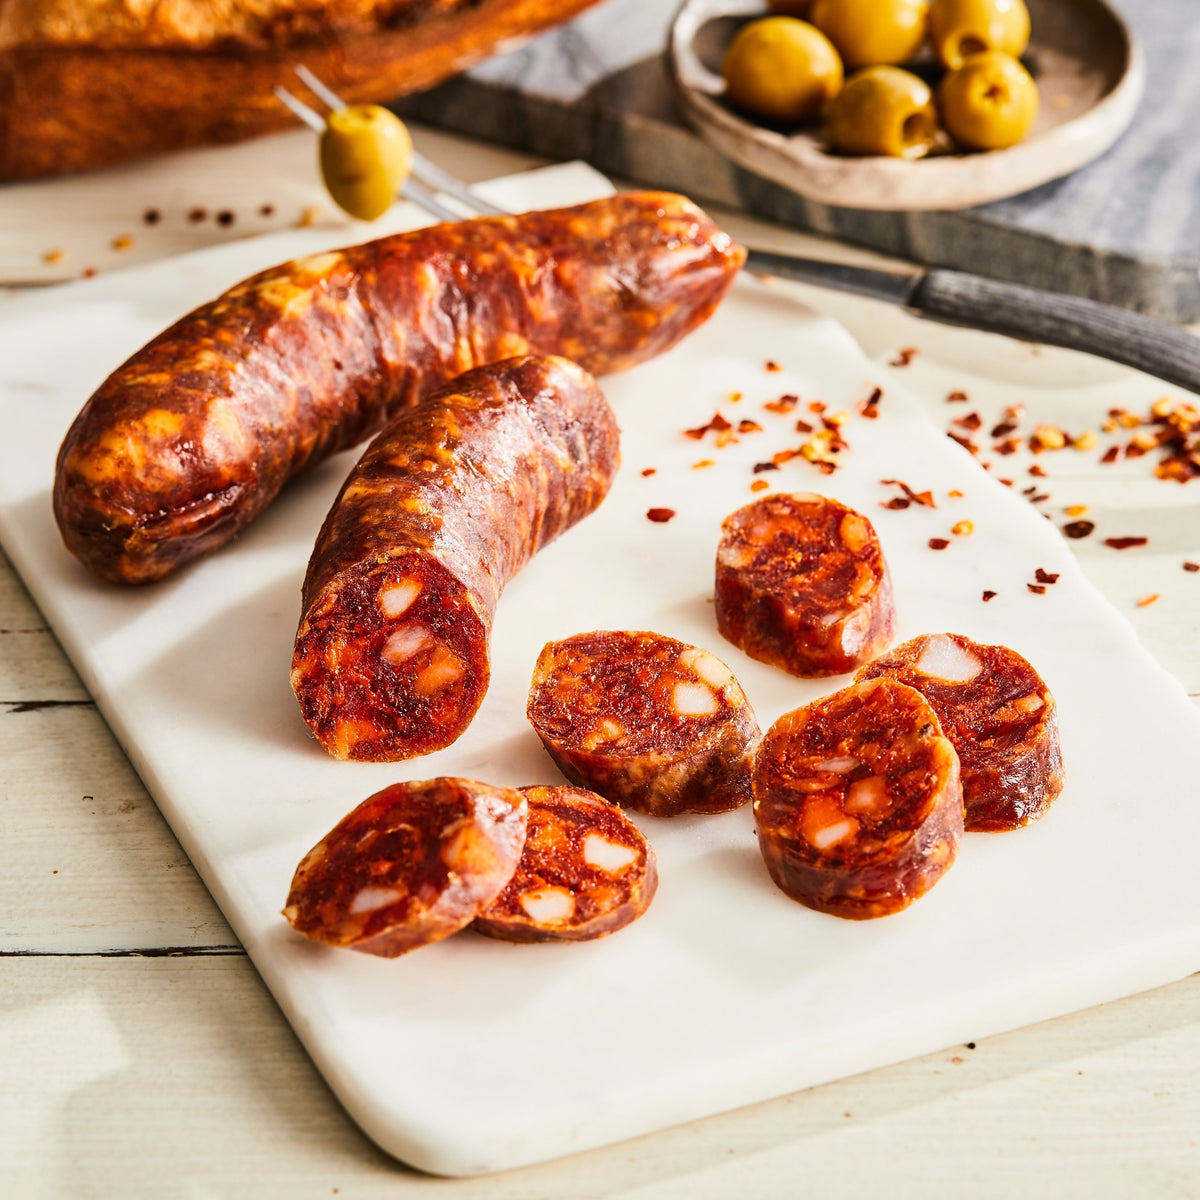 Image of Chorizo. 1 link, 3oz. a Spanish-style pork salami made with pimenton and garlic.